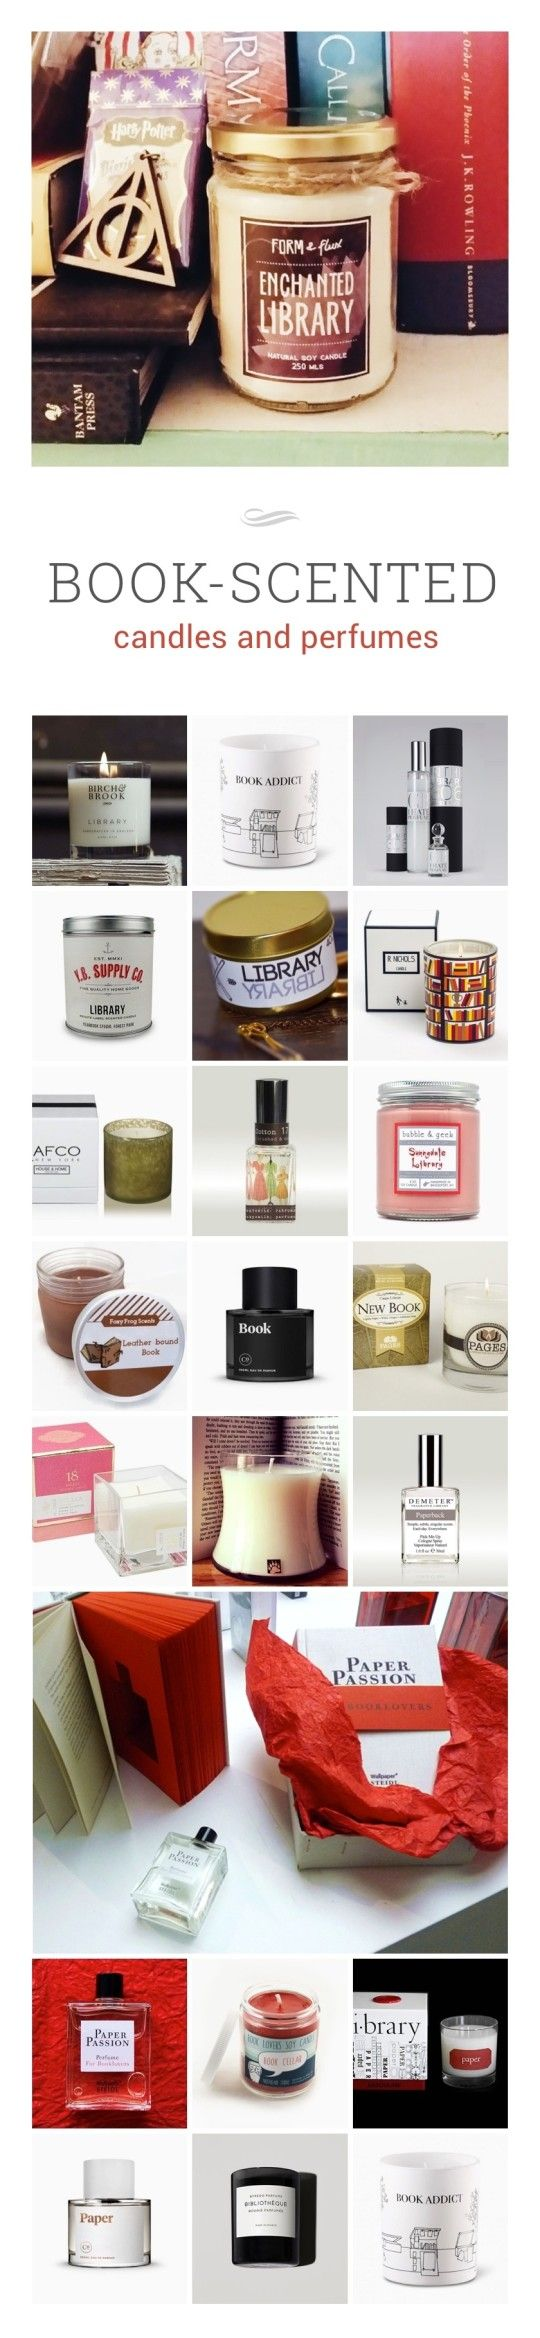 You'll be surprised how many book-scented candles and perfumes are available #infographic